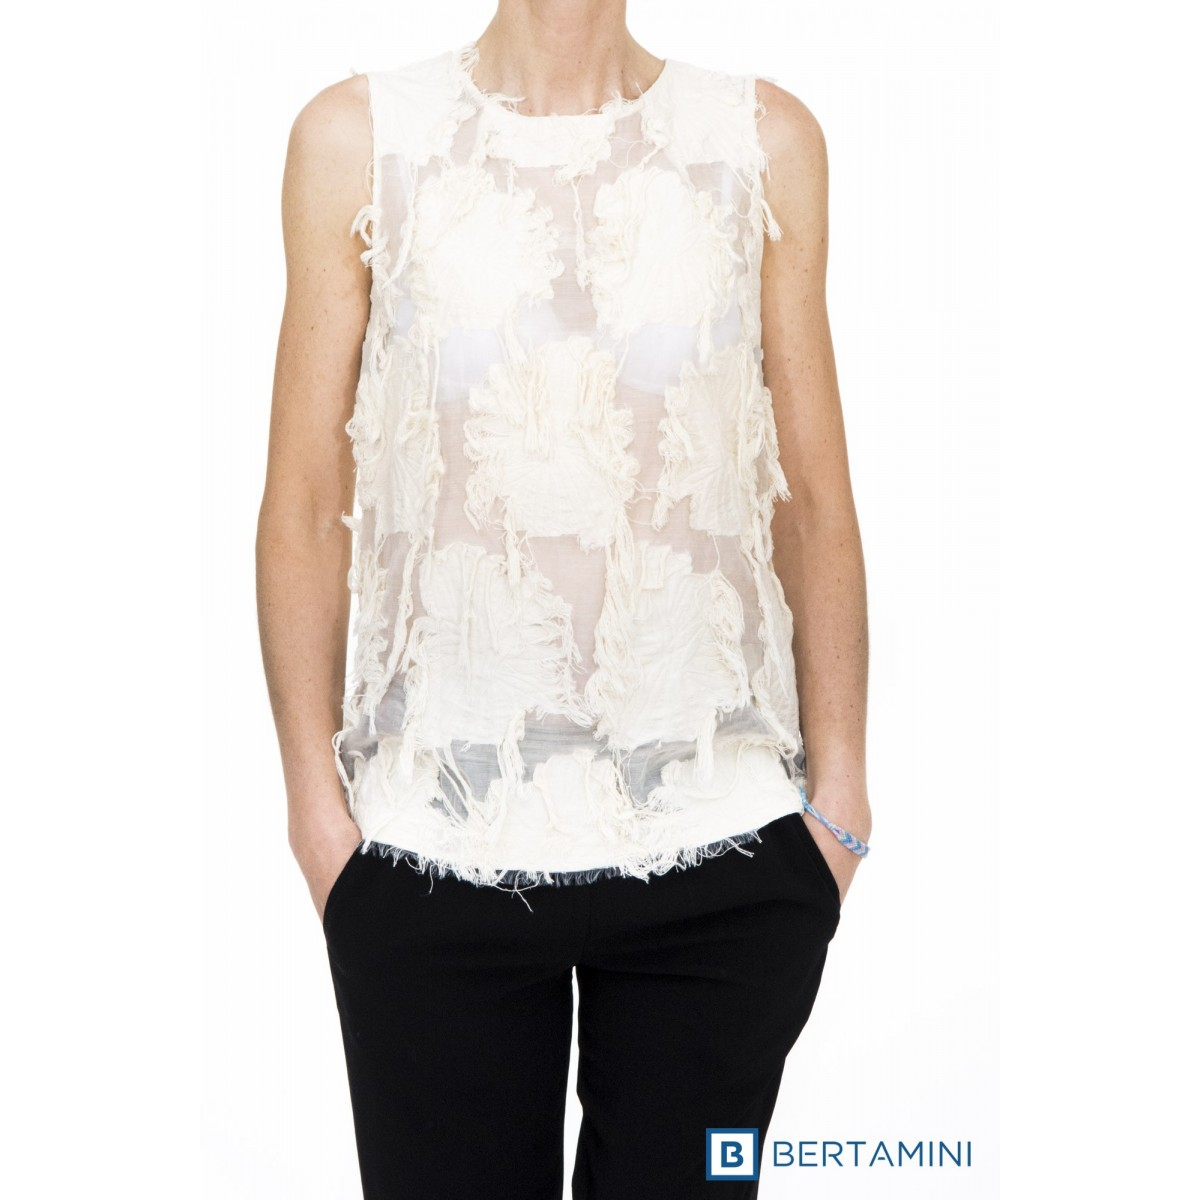 Top Erika cavallini - semicouture - 048 top pizzo